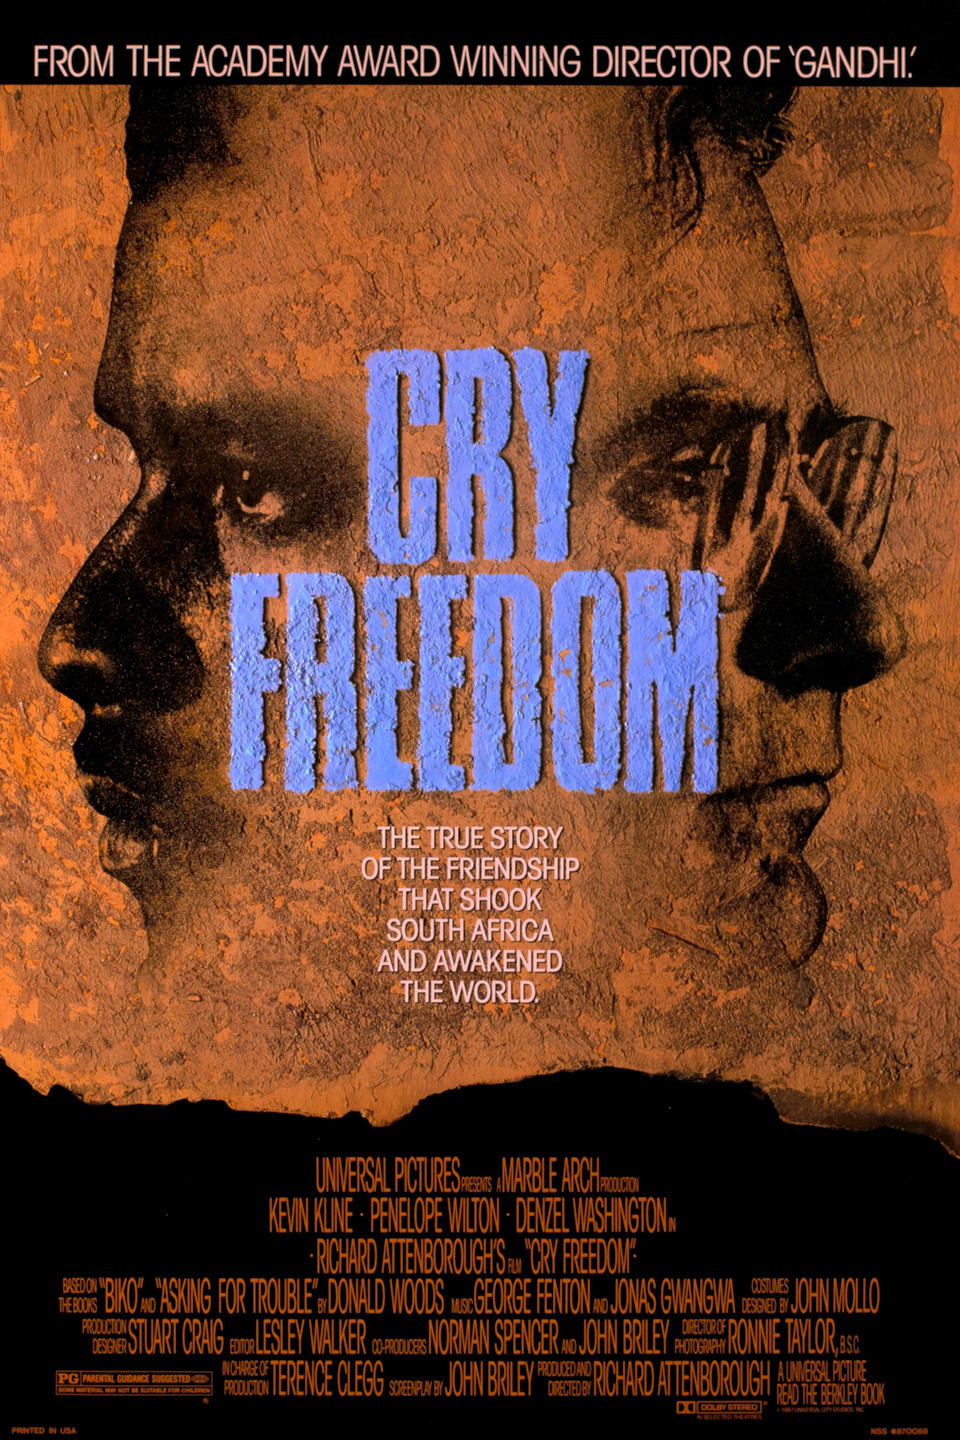 The very moving film that chronicled the Afrikaner repression of the blacks